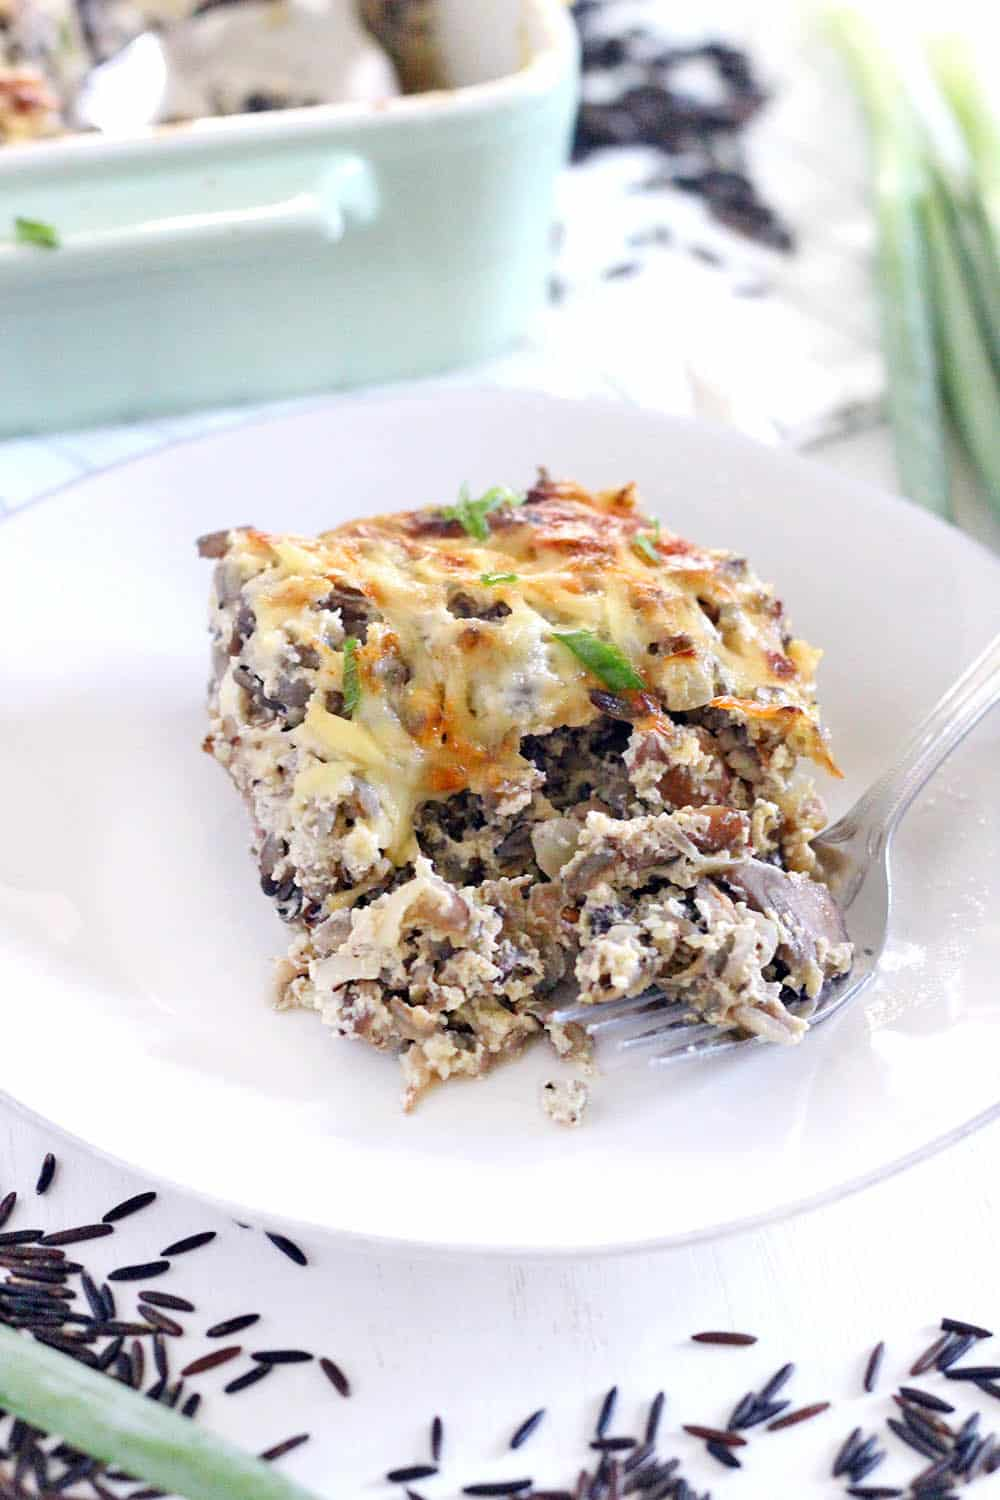 White plate with a square of casserole in the center, with uncooked wild rice scattered around and ceramic casserole dish in background.